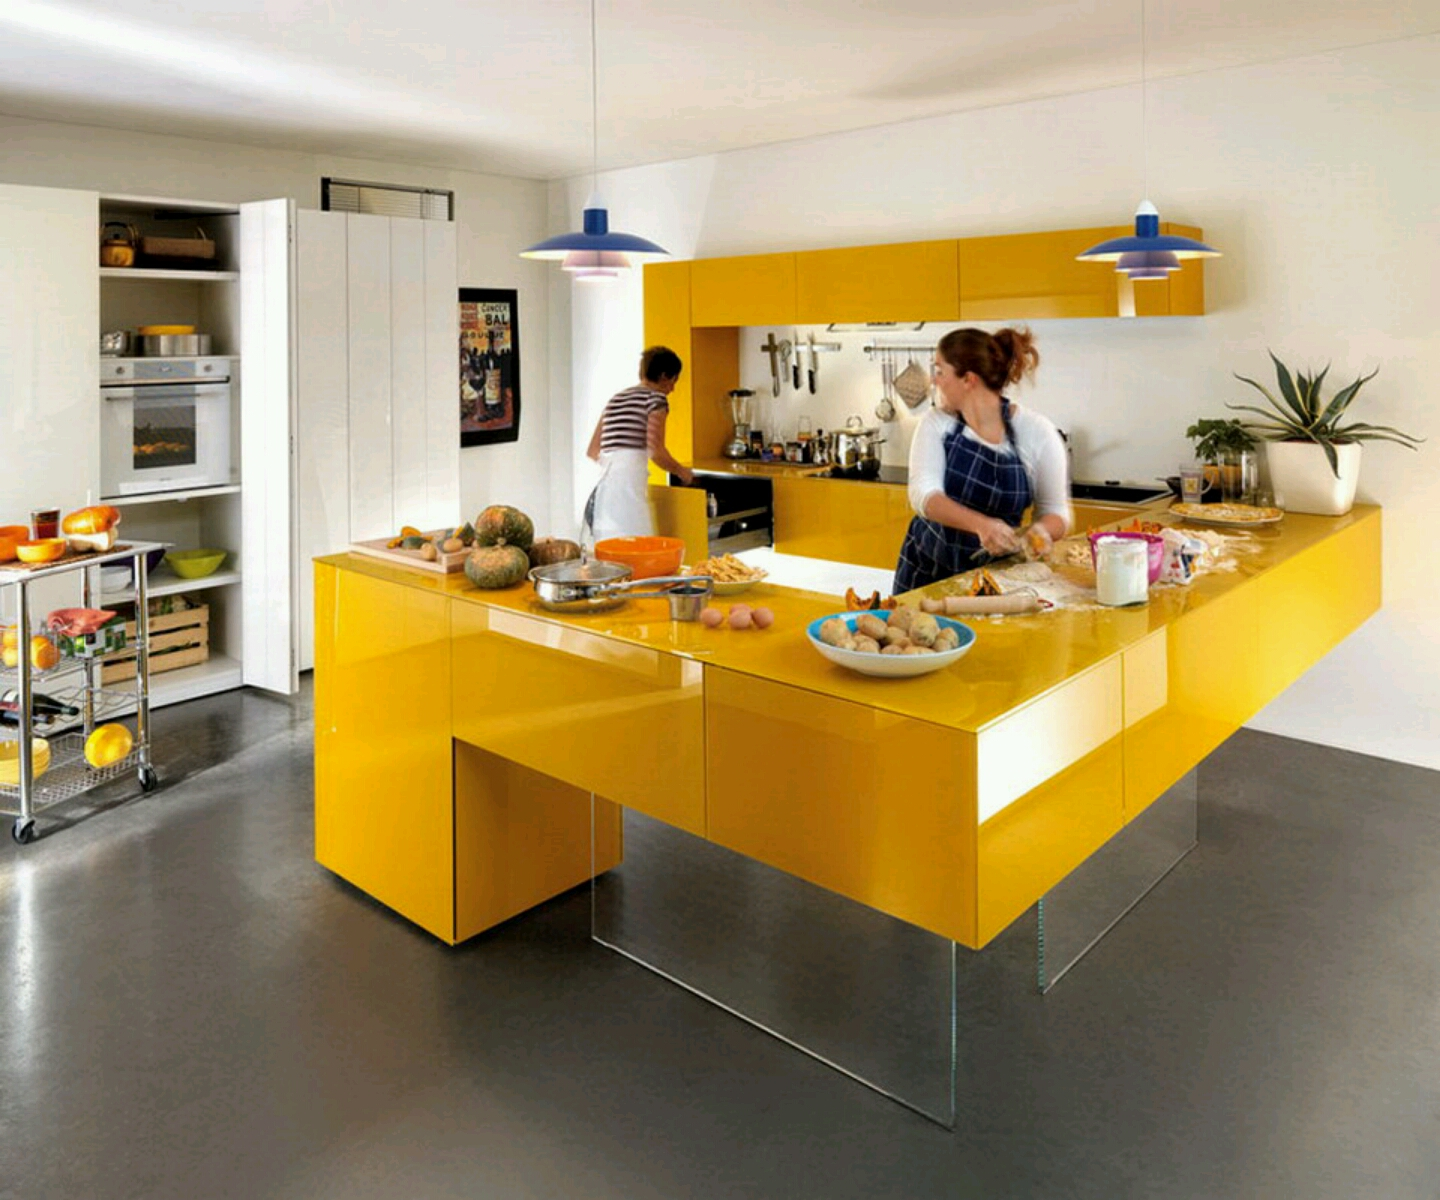 Modern kitchen cabinets designs ideas furniture gallery for Modern home decor ideas kitchen